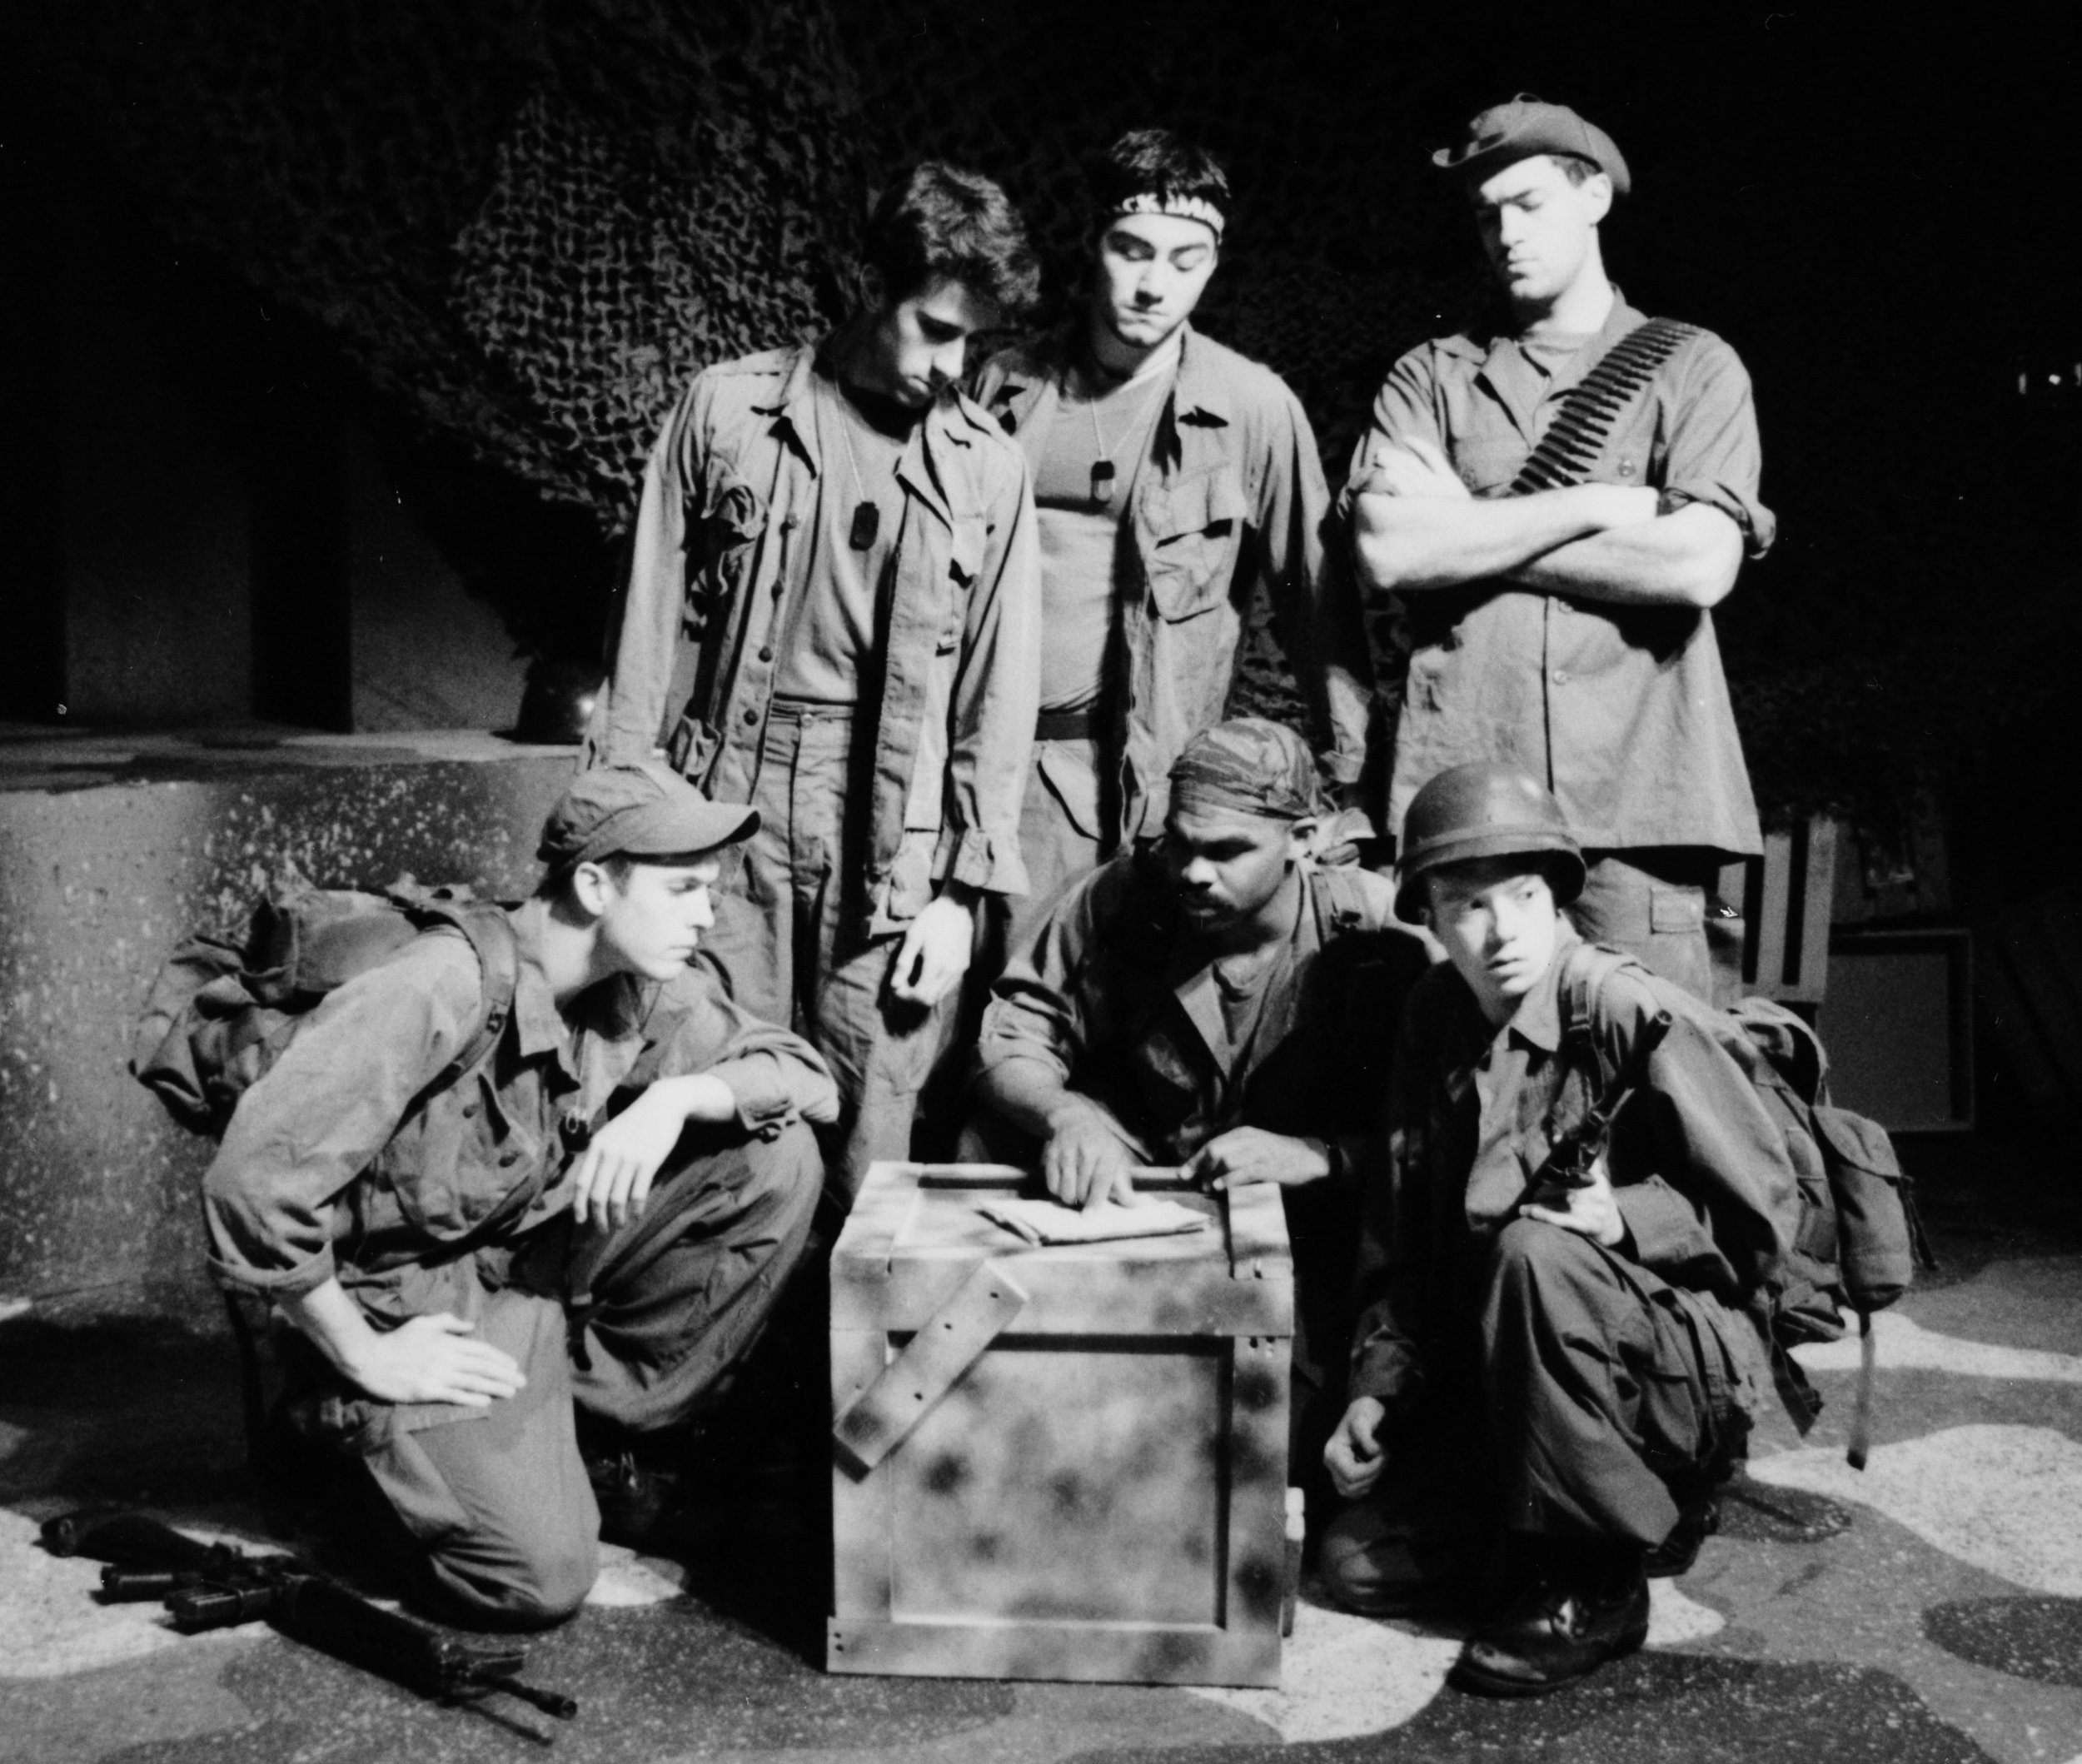 William Vogt (Dinky Dau), Craig Bilsky (Professor), Craig Bilsky (Professor), Gene Fereaud (Habu), Scott Freeburg (Baby San), and Scott Donnelly (Little John) in Draw the Sneck Productions'1996 | 1997 productions of  Tracers , directed by John Drouillard.  Photo by Paul Backer.